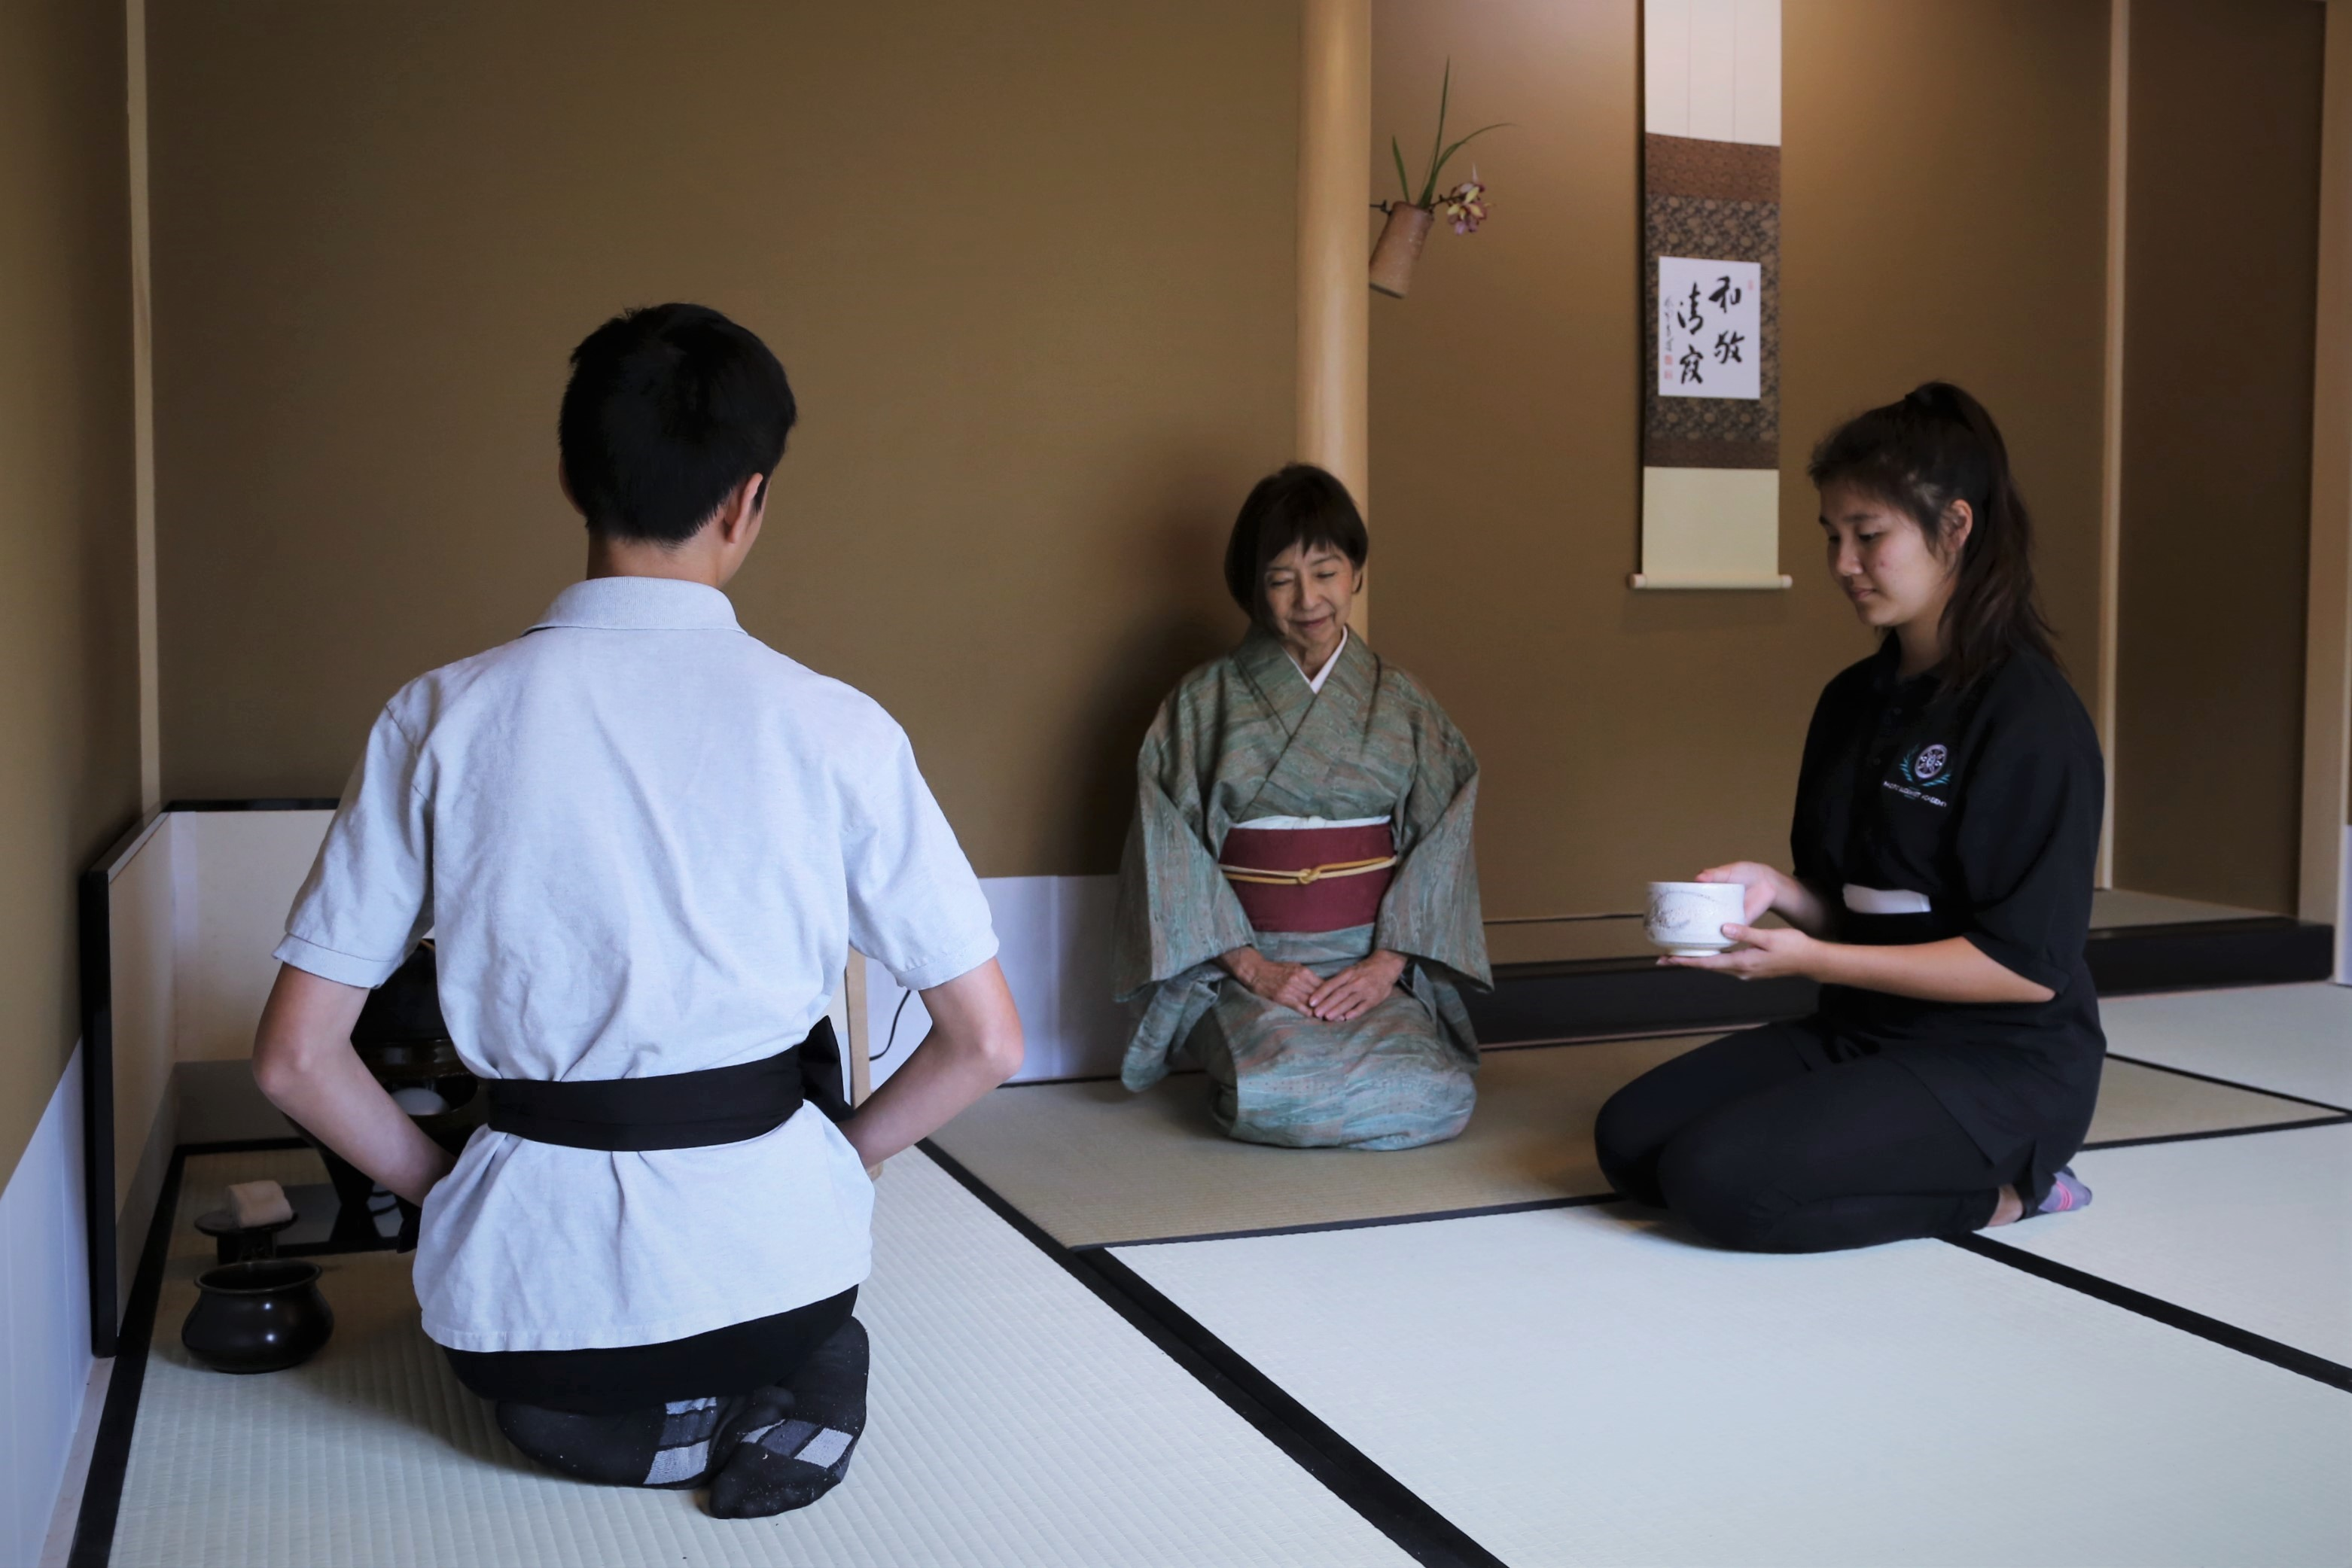 Pacific Buddhist Academy students Kano Hashimoto (right) and Yuma Sky Tochika practice chadö under the watchful eye of Marion Yasui-Sensei (in kimono). (Photos by Alan Kubota/Courtesy PBA)